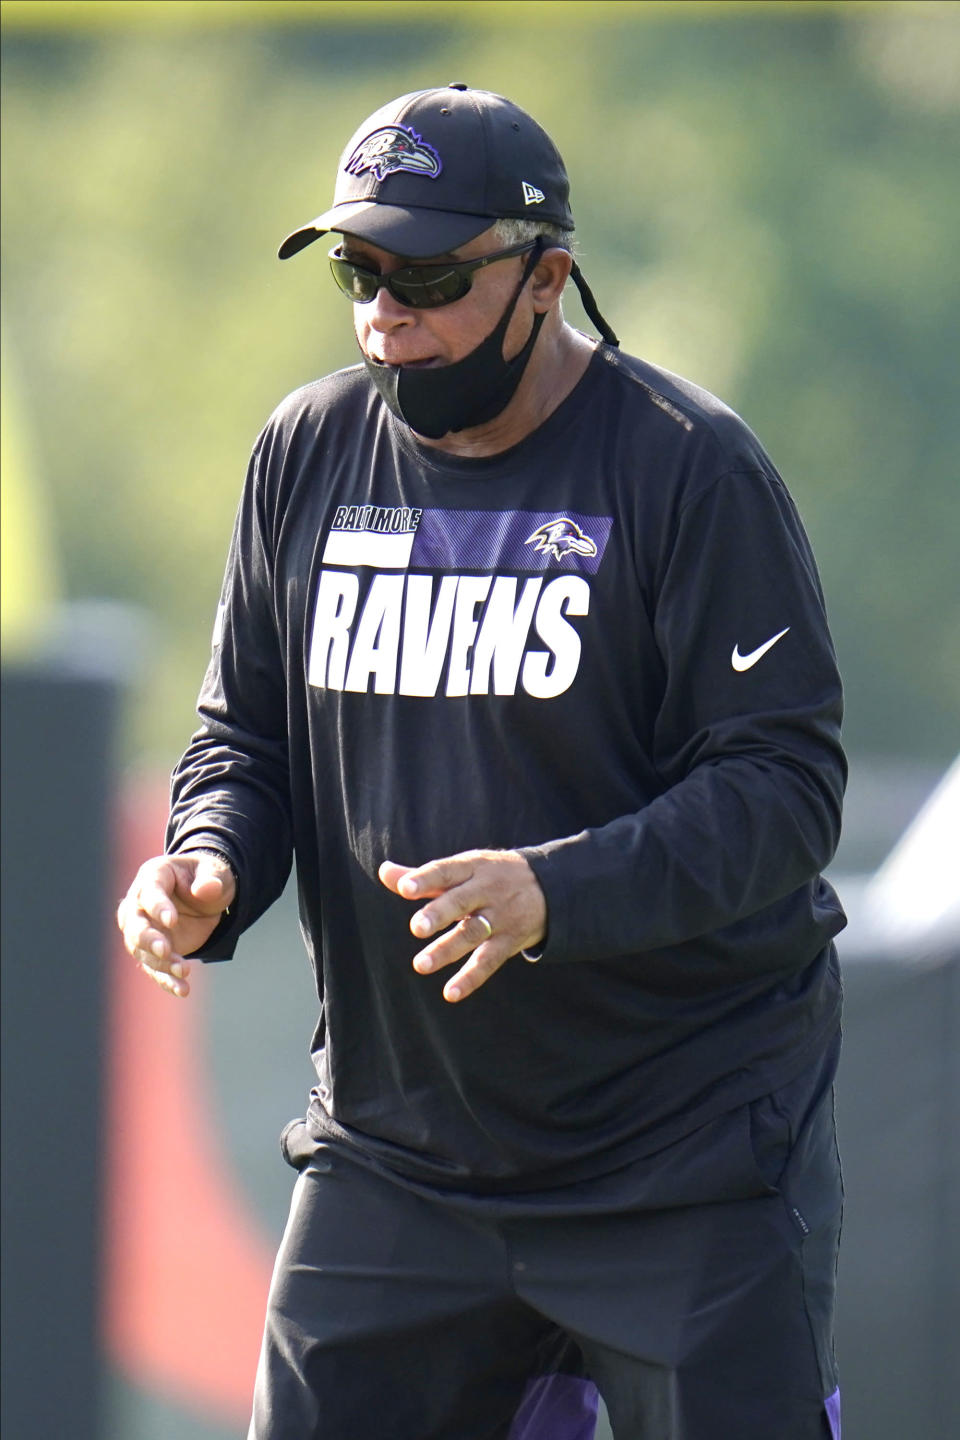 FILE - Baltimore Ravens assistant head coach David Culley works with wide receivers during an NFL football training camp practice in Owings Mills, Md., in this Tuesday, Aug. 25, 2020, file photo. David Culley has been hired as the coach of the Houston Texans, a person familiar with the hiring told The Associated Press. The person spoke to the AP on condition of anonymity Wednesday night, Jan. 27, 2021, because the hiring hasnt been announced. (AP Photo/Julio Cortez, File)